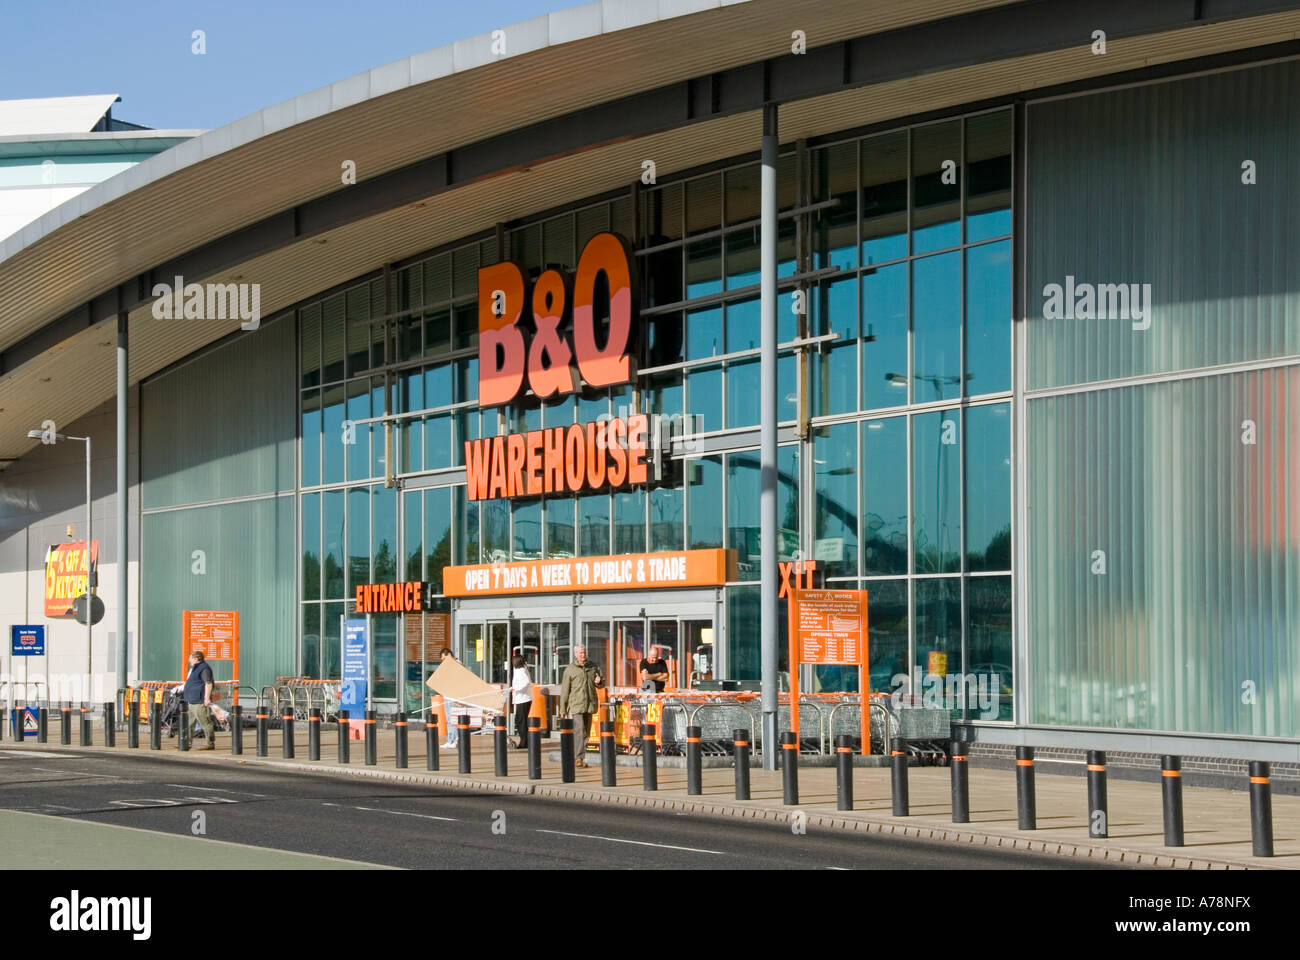 South london entrance to bq do it yourself warehouse store in south london entrance to bq do it yourself warehouse store in retail shopping park includes bollards to reduce ram raid risk solutioingenieria Gallery